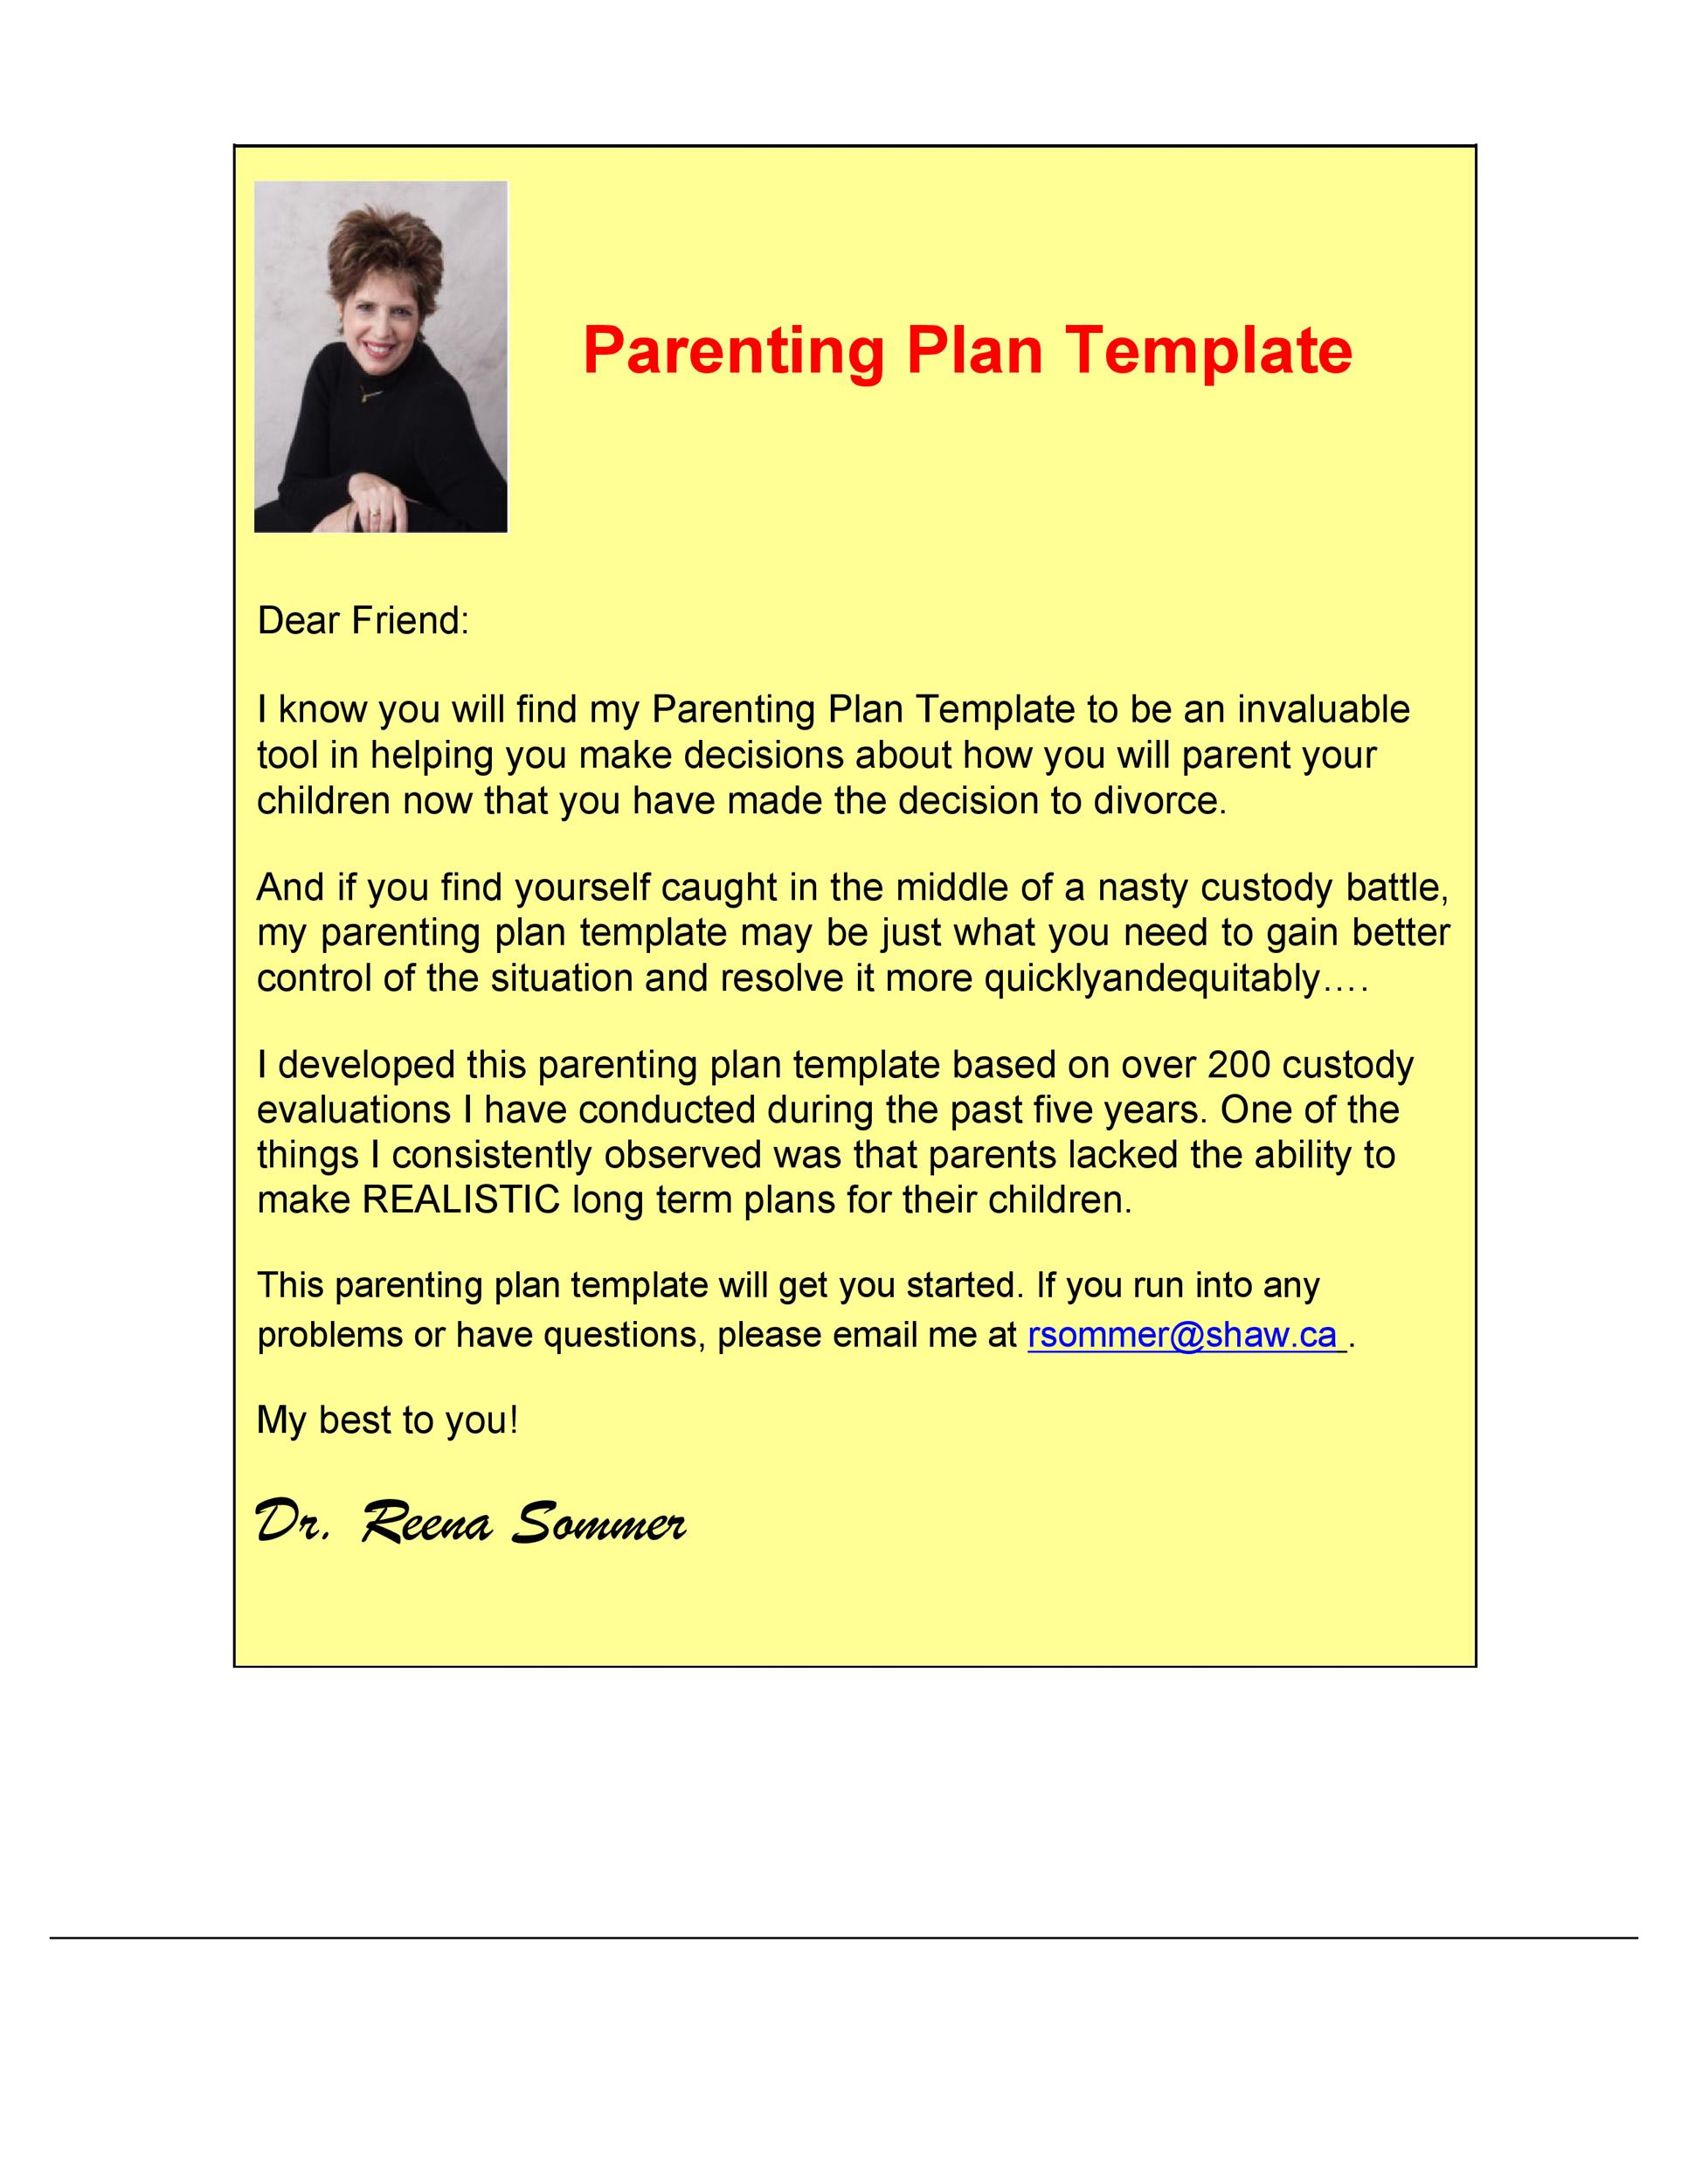 Free parenting plan template 06